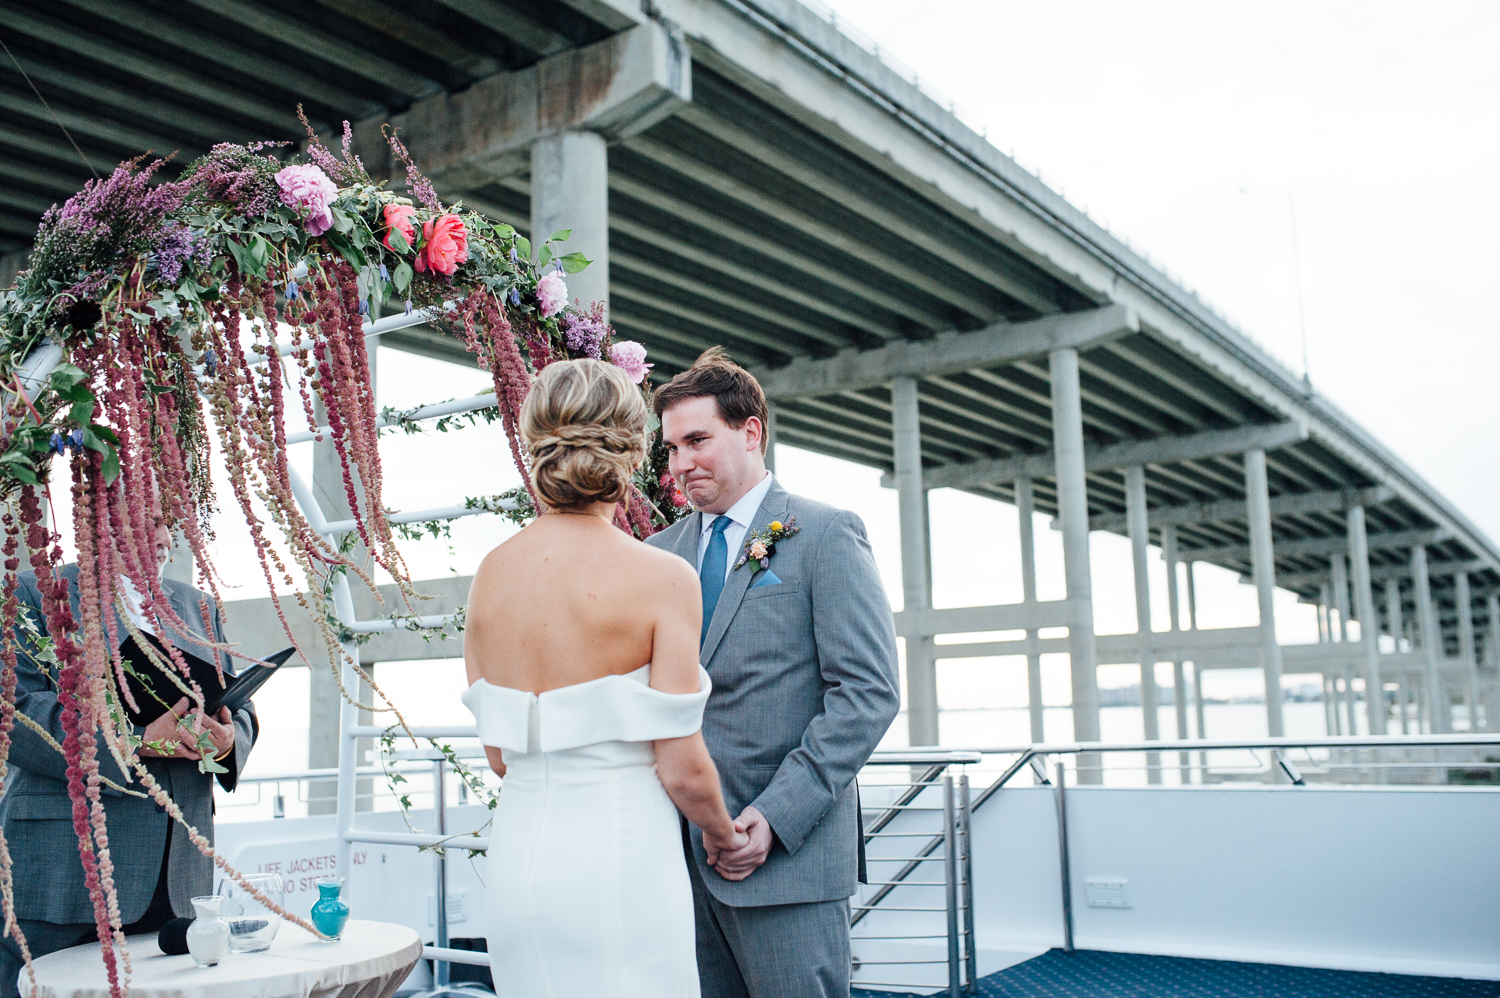 Jessenia Gonzalez Photography-The Biscayne Lady- Yacht-Downtown-Bayside-Wedding-Bridesmaids-groomsmen (28 of 103).jpg